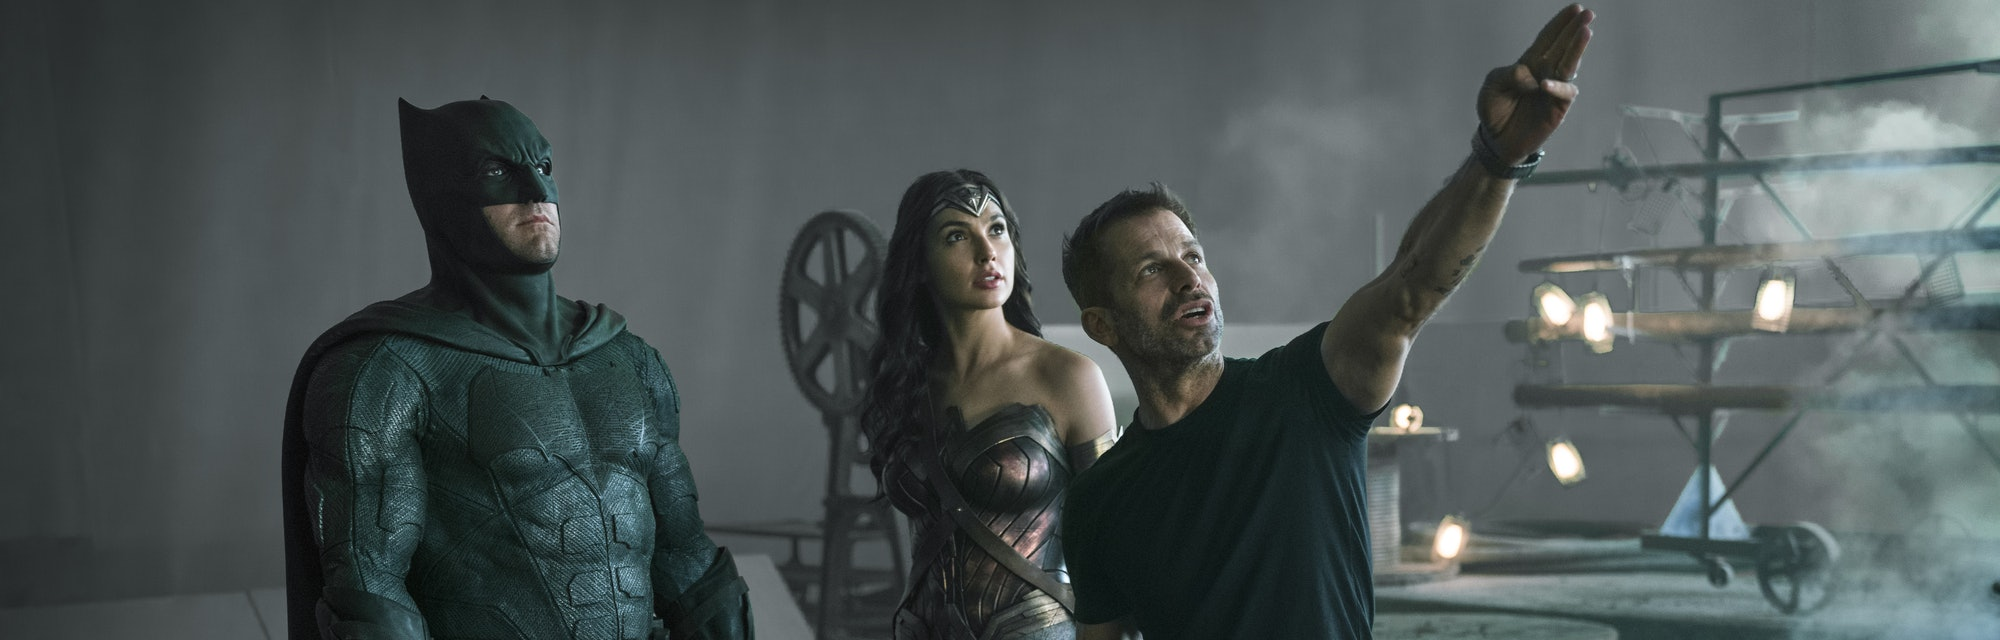 Justice League Zack Snyder Cut- Find Out The Release Date!